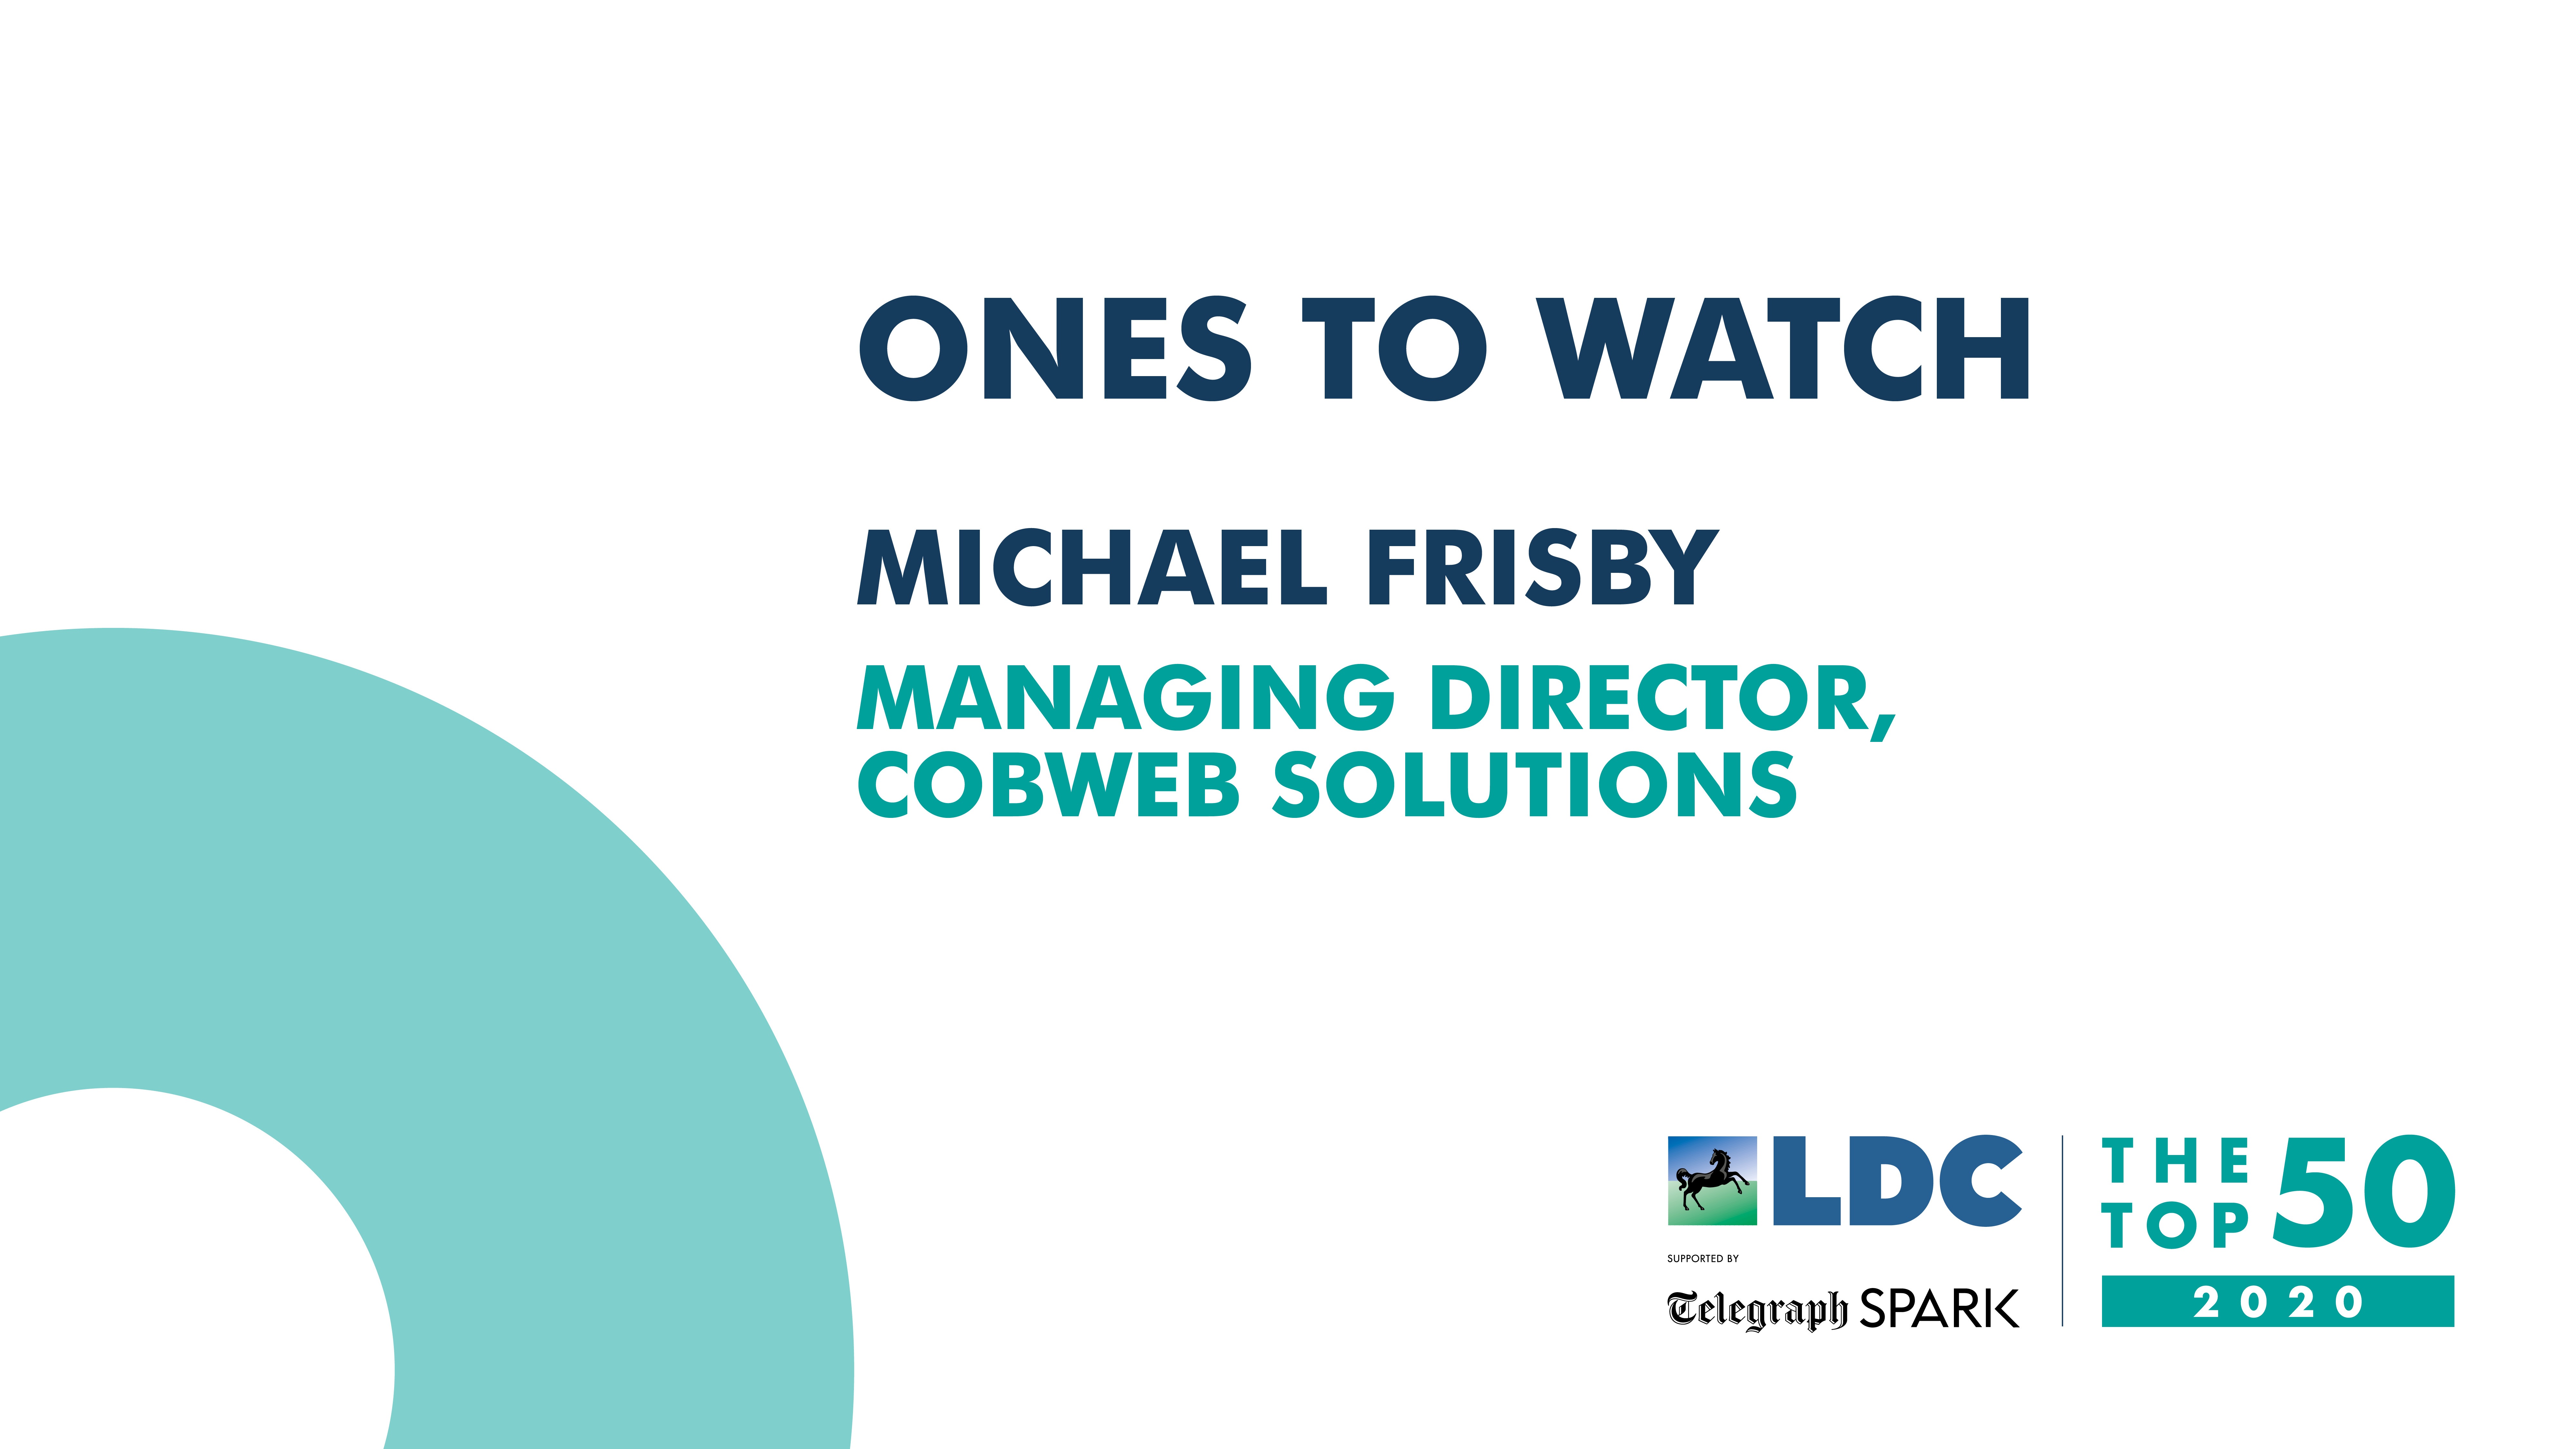 One to watch, Michael Frisby